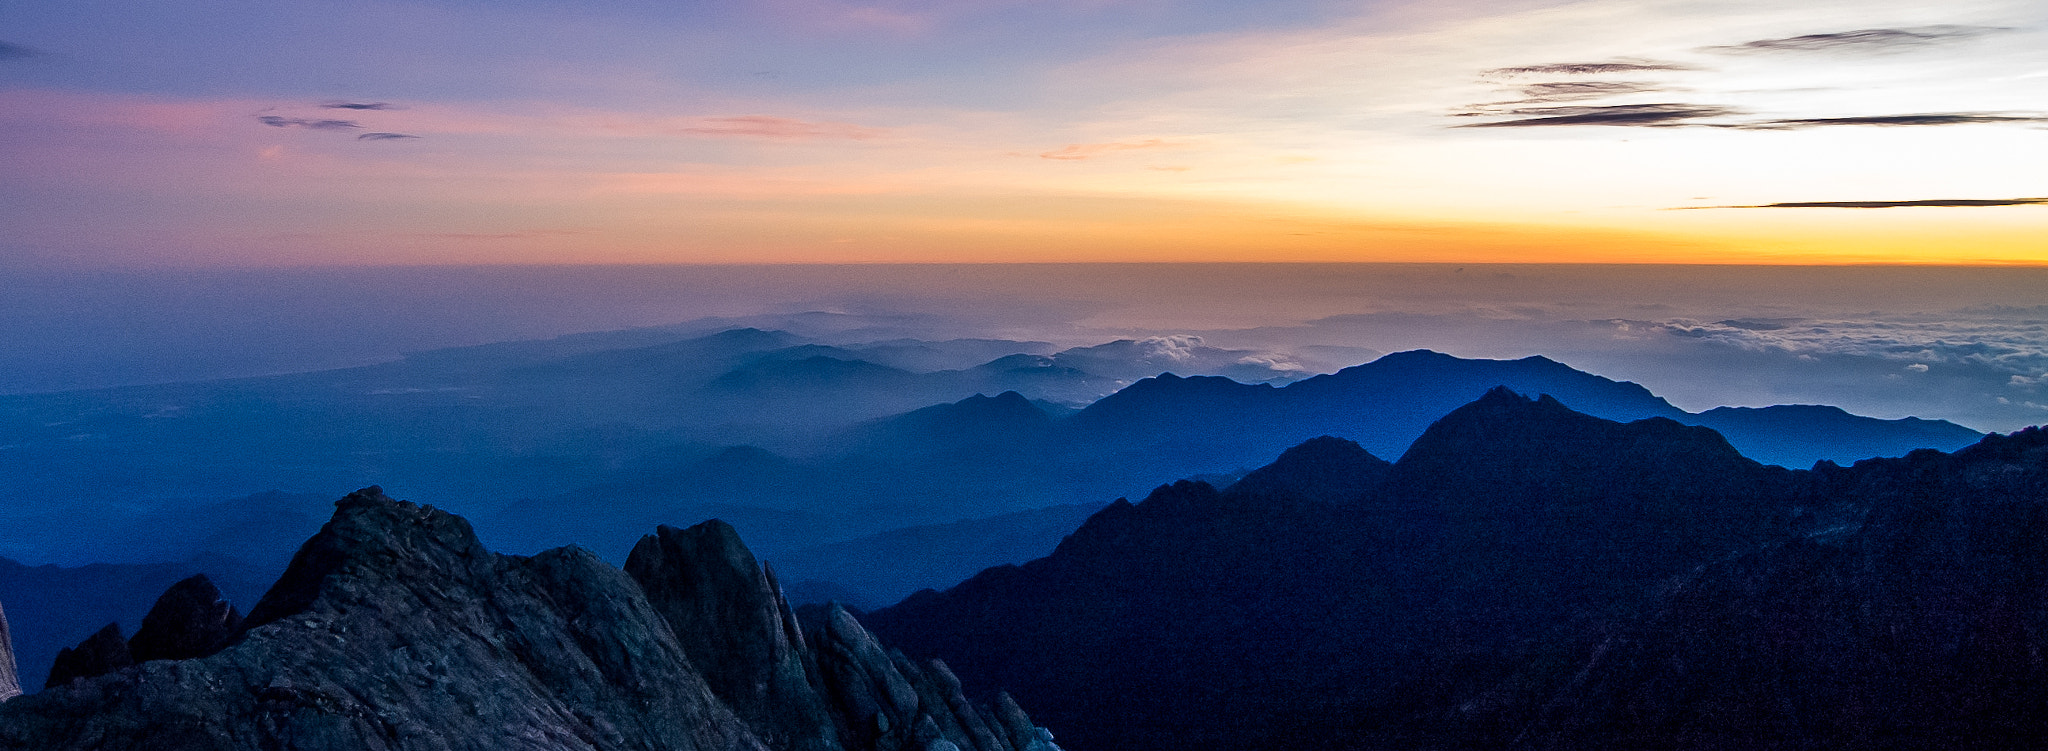 Photograph Sunrise from Mt Kinabalu by Tom Kirkwood on 500px